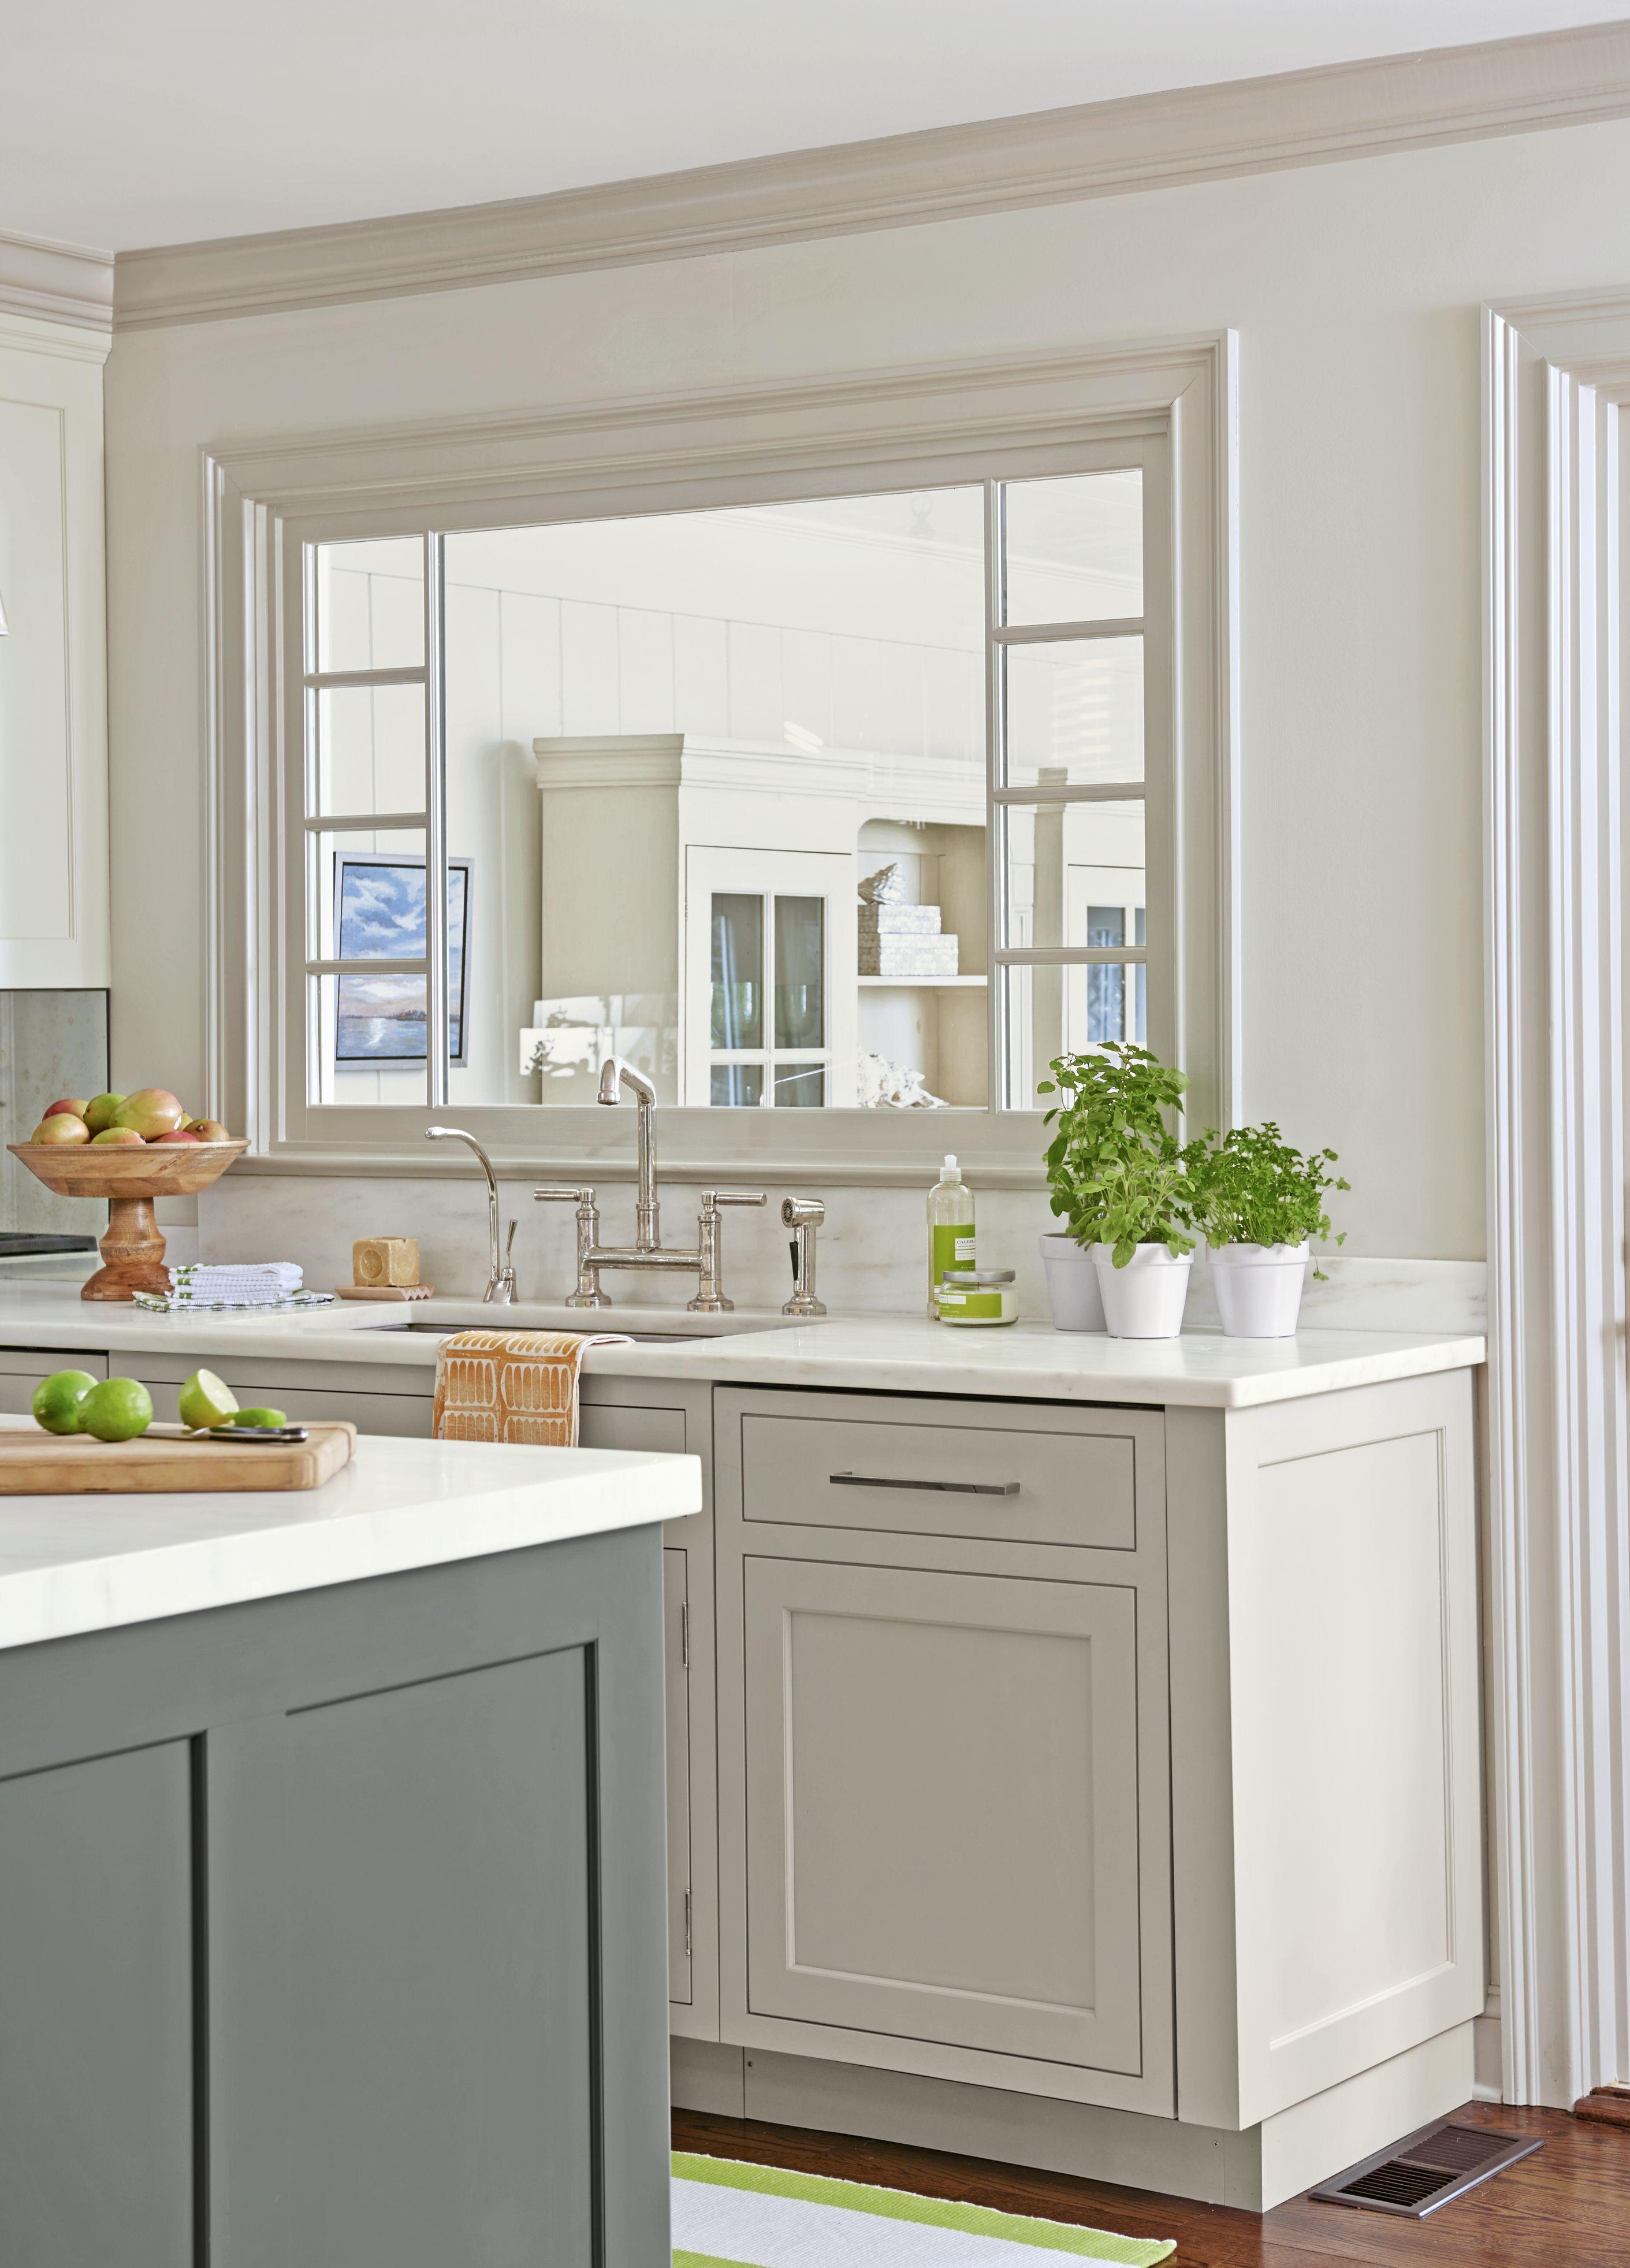 Kitchen sink without window  s kitchen turned major multitasker  s kitchen kitchens and